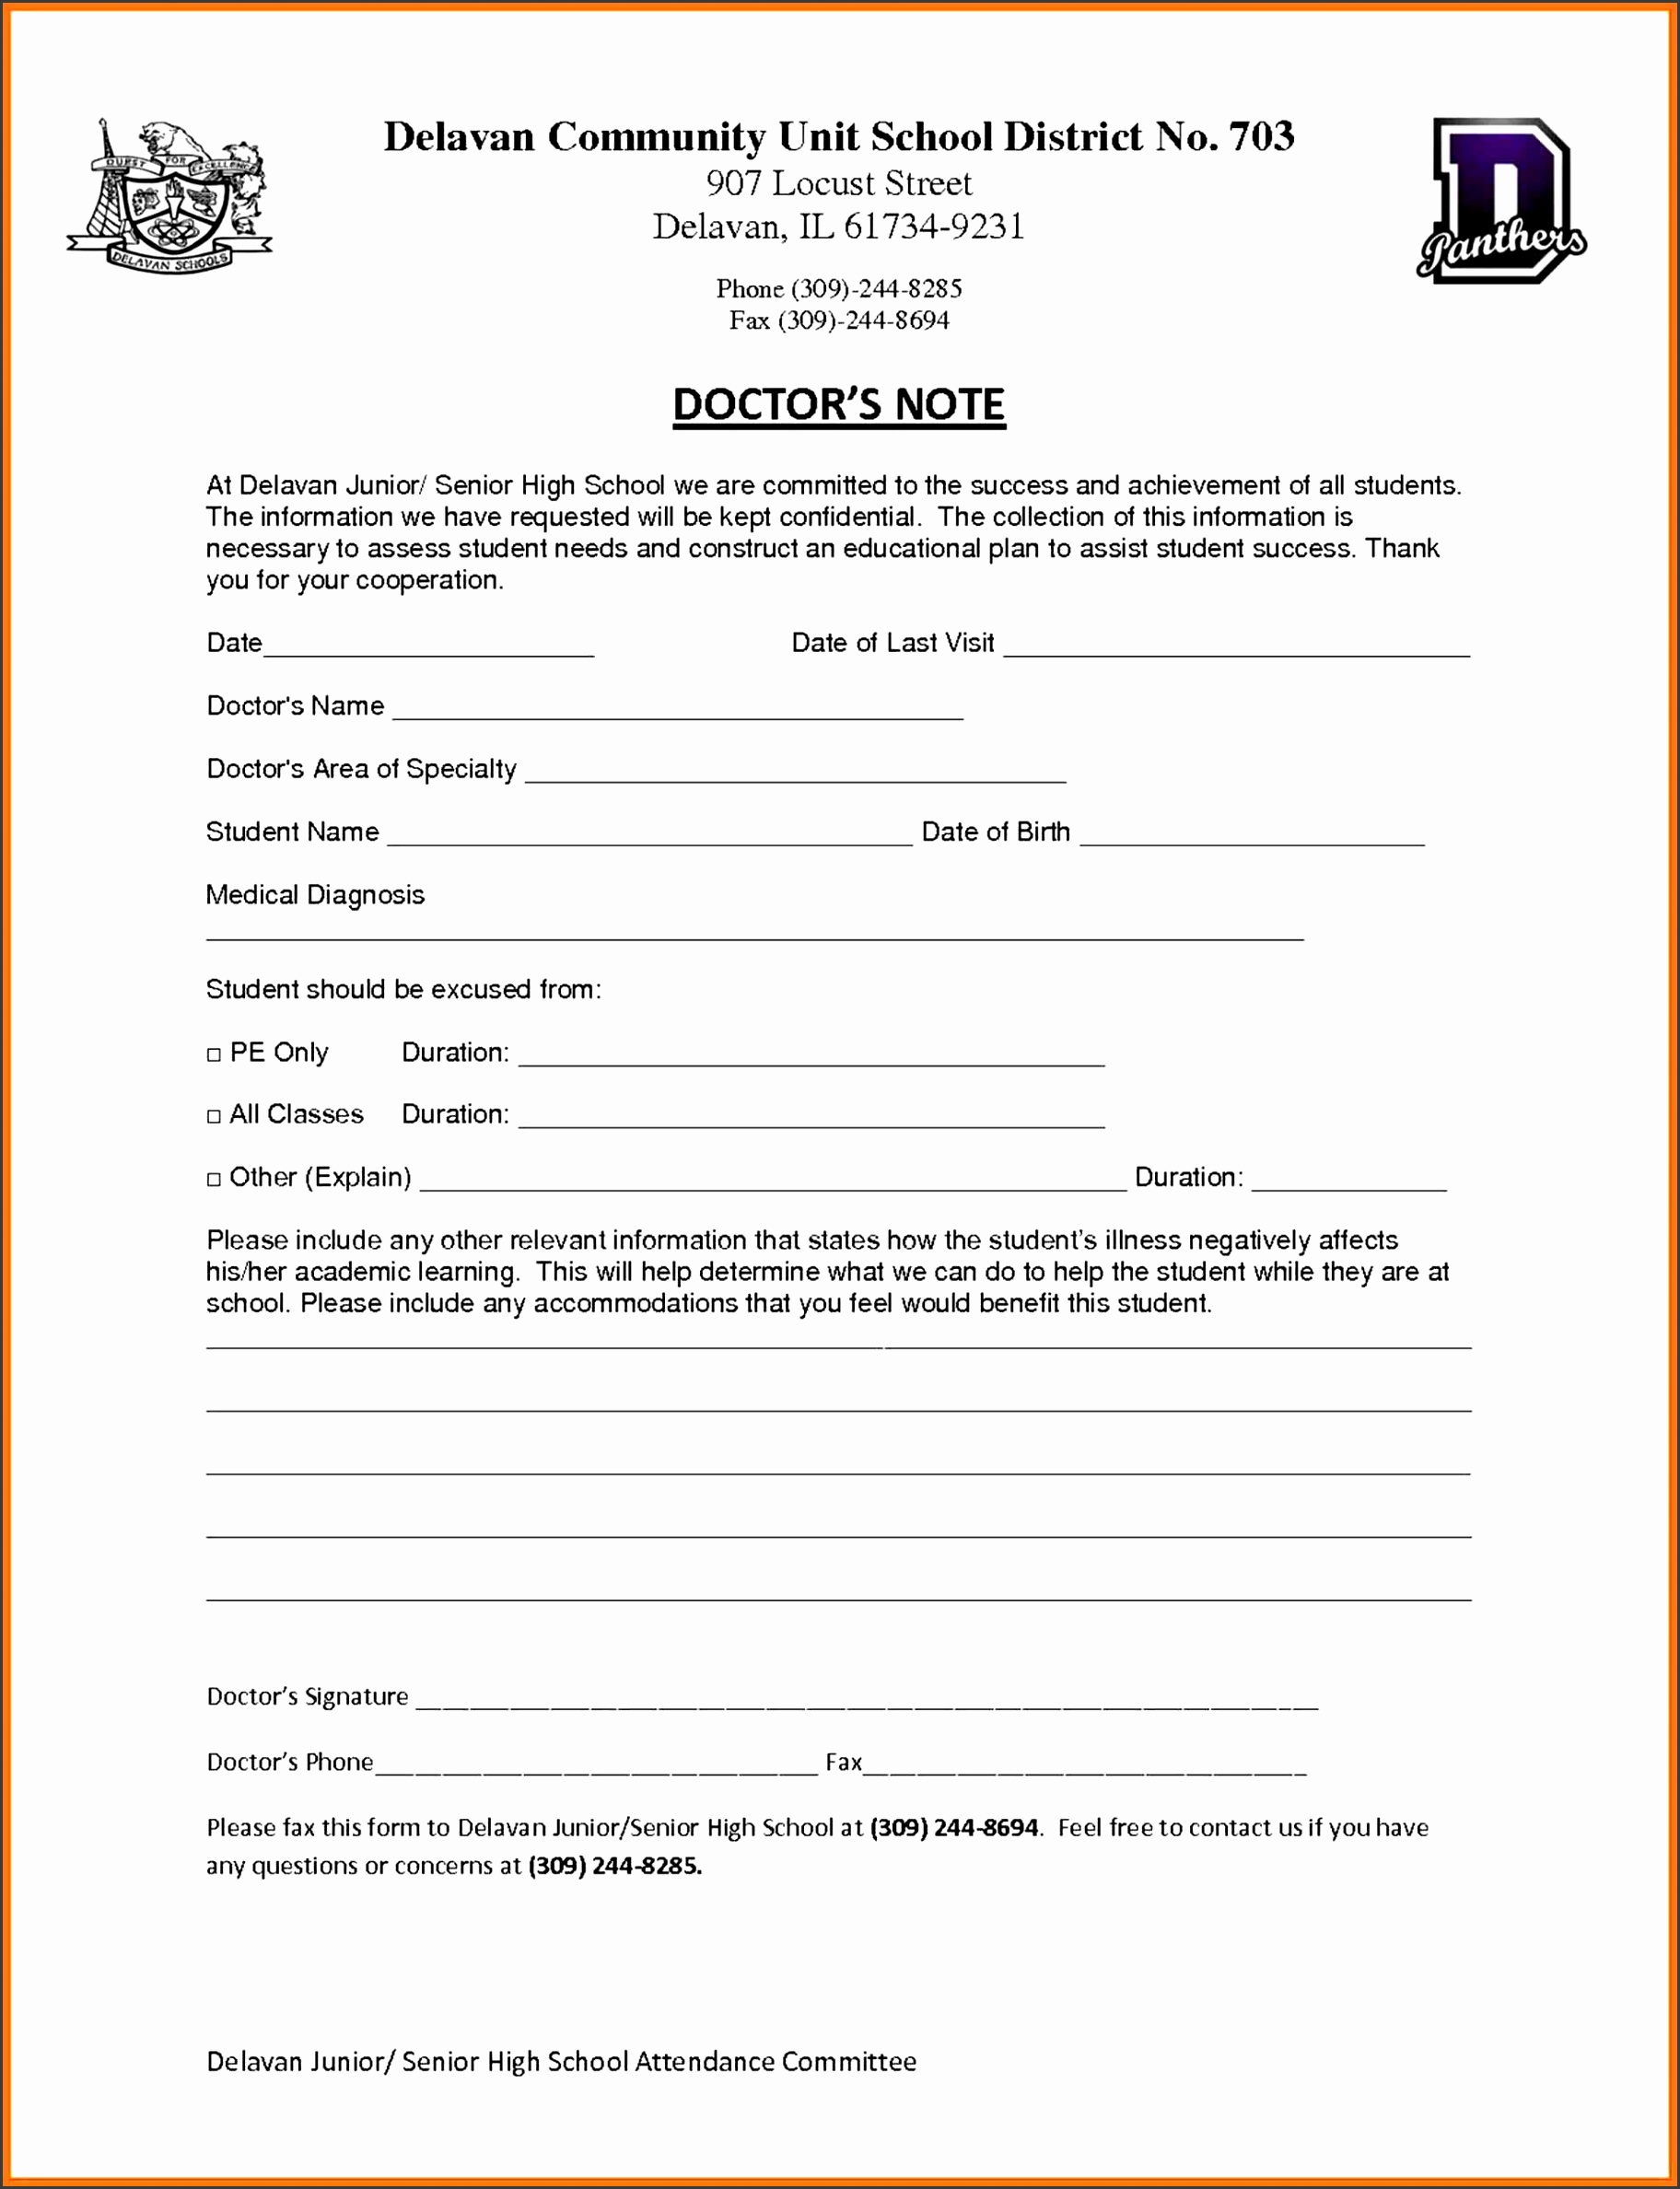 sample doctors note for school printable avid cornell